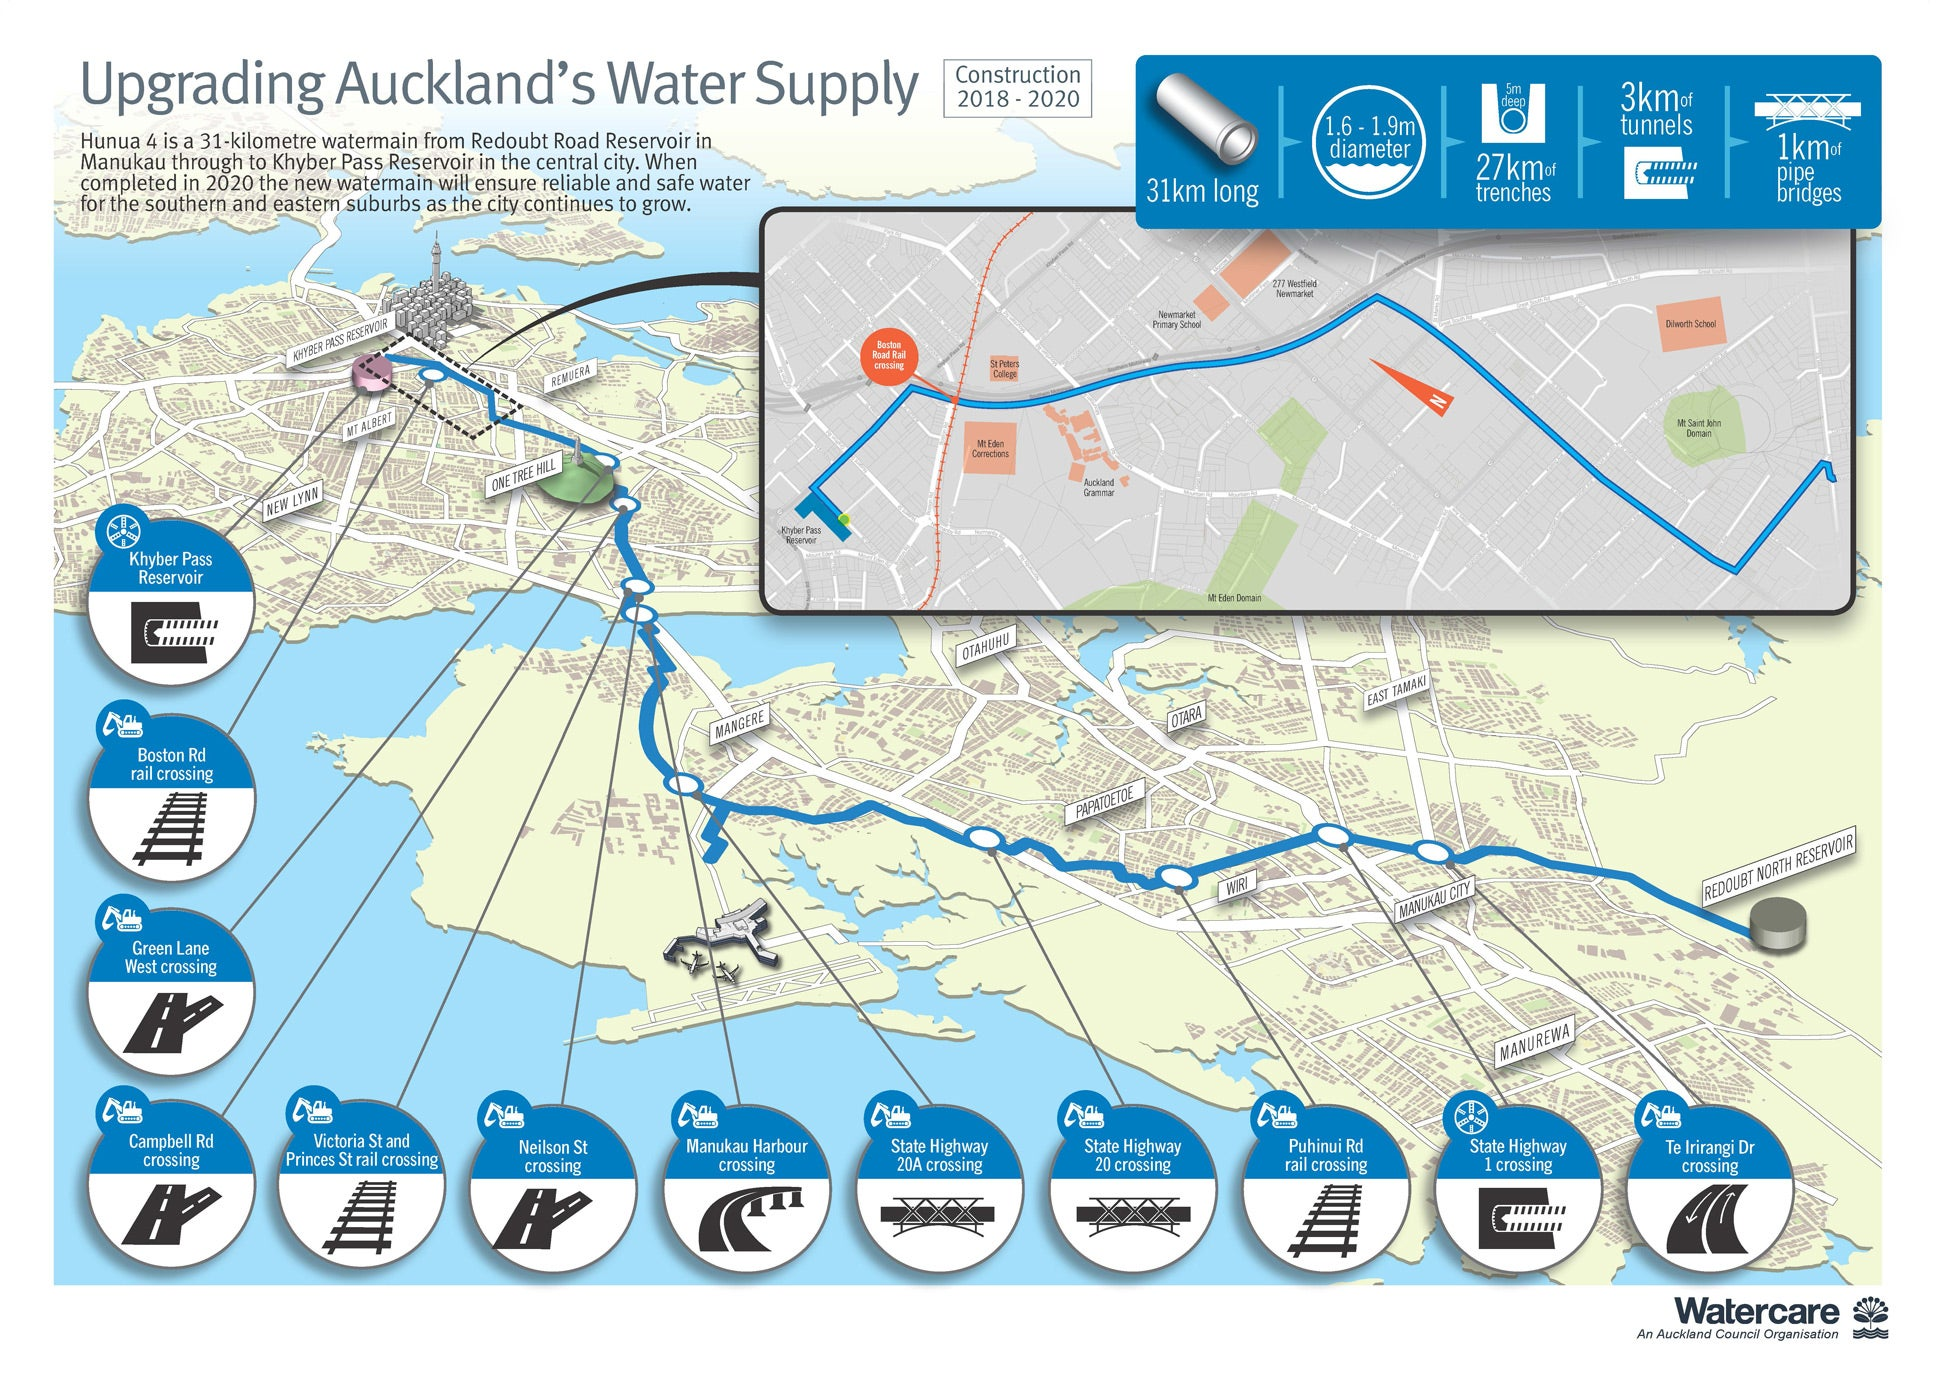 An infographic map displaying Watercare's 'Hūnua 4 Watermain' project from Redoubt North reservoir to Auckland's central city.